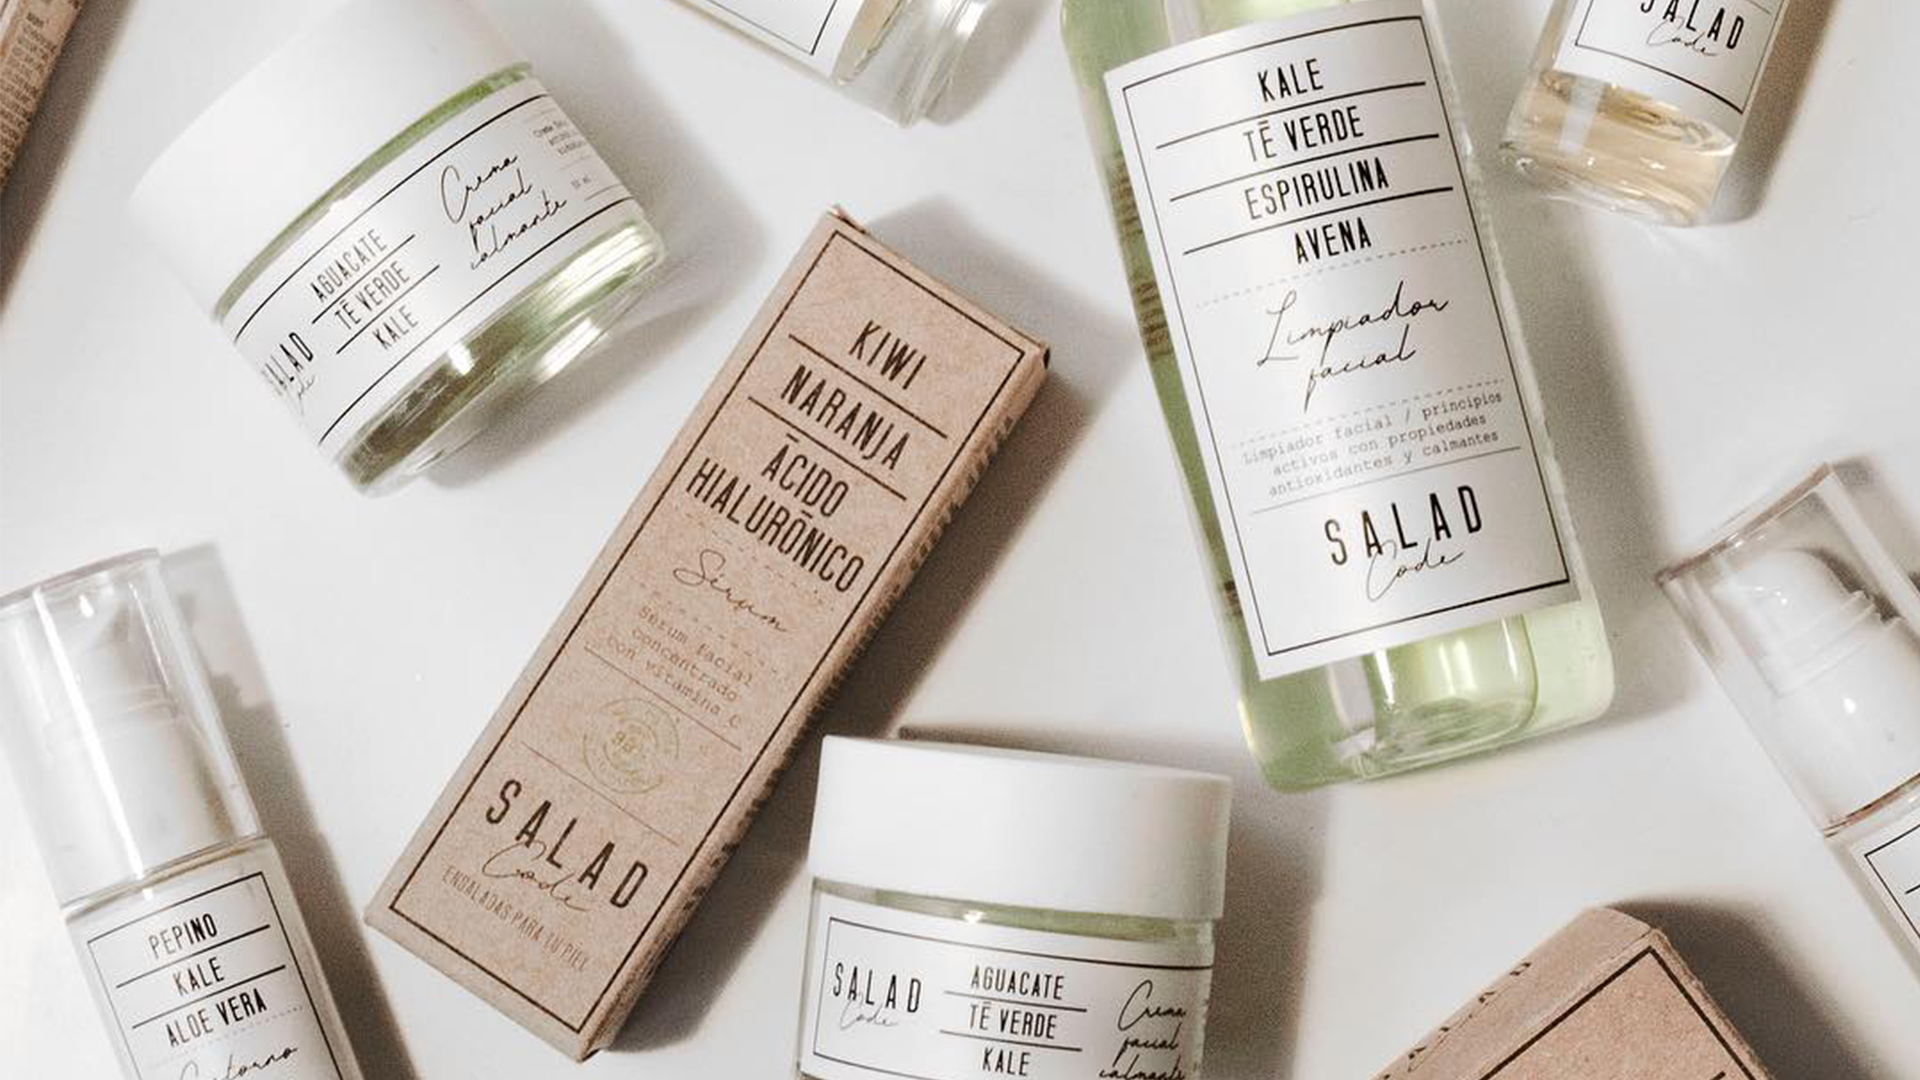 packaging-saladcode-sara-quintana-freelance-diseno-direccion-arte-01